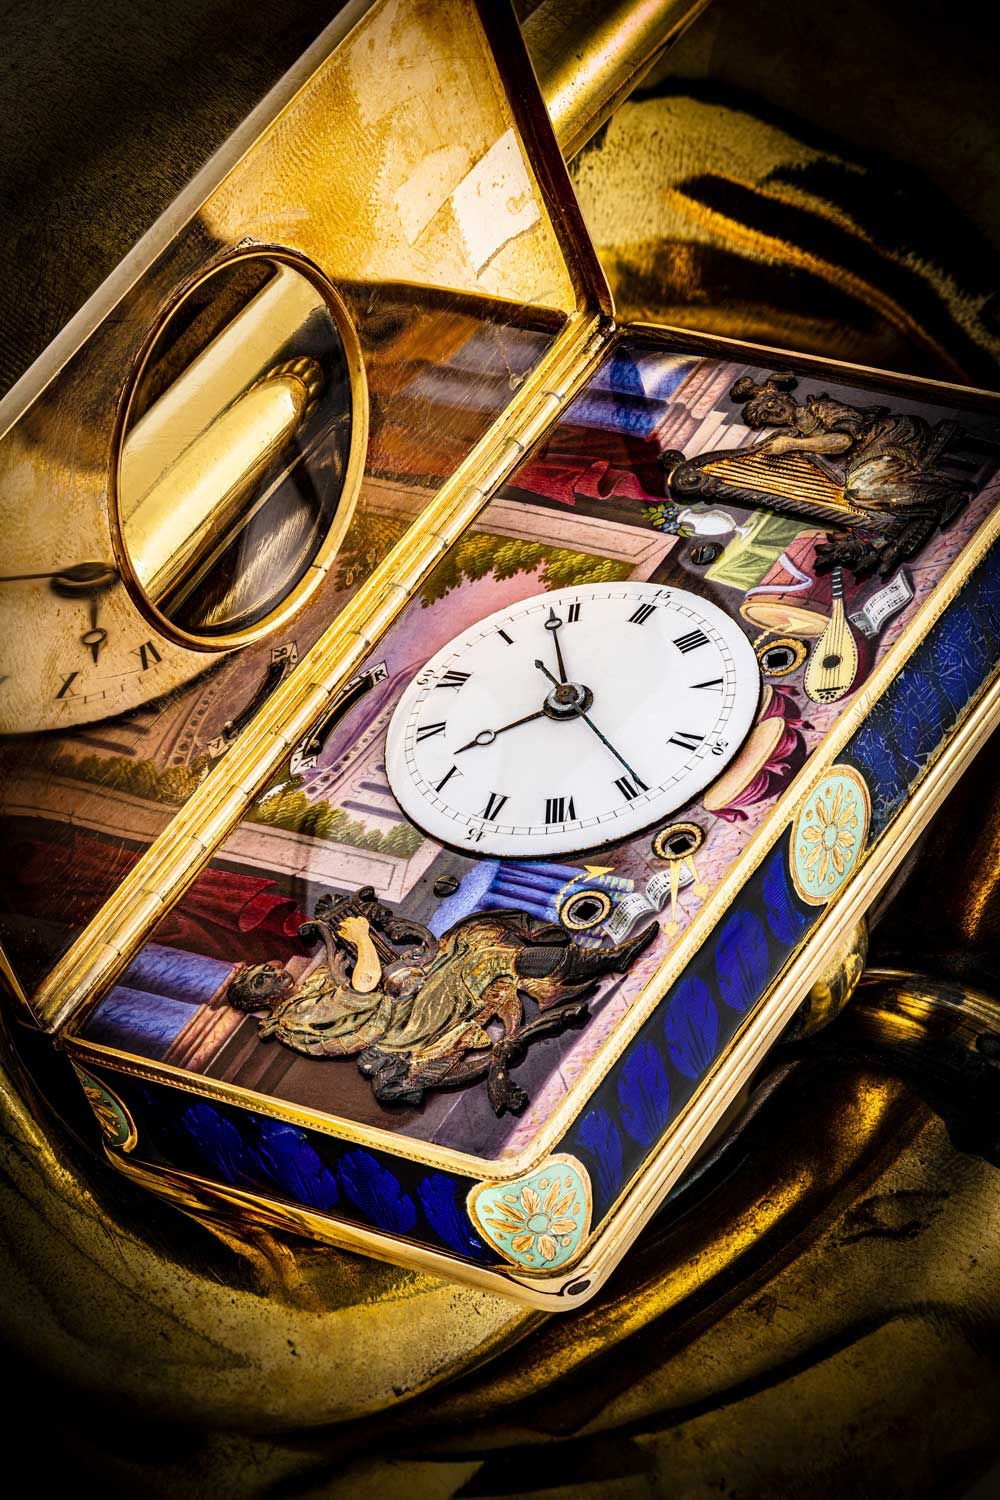 An 18k gold and enamel musical box with automaton and centre seconds watch from 1815